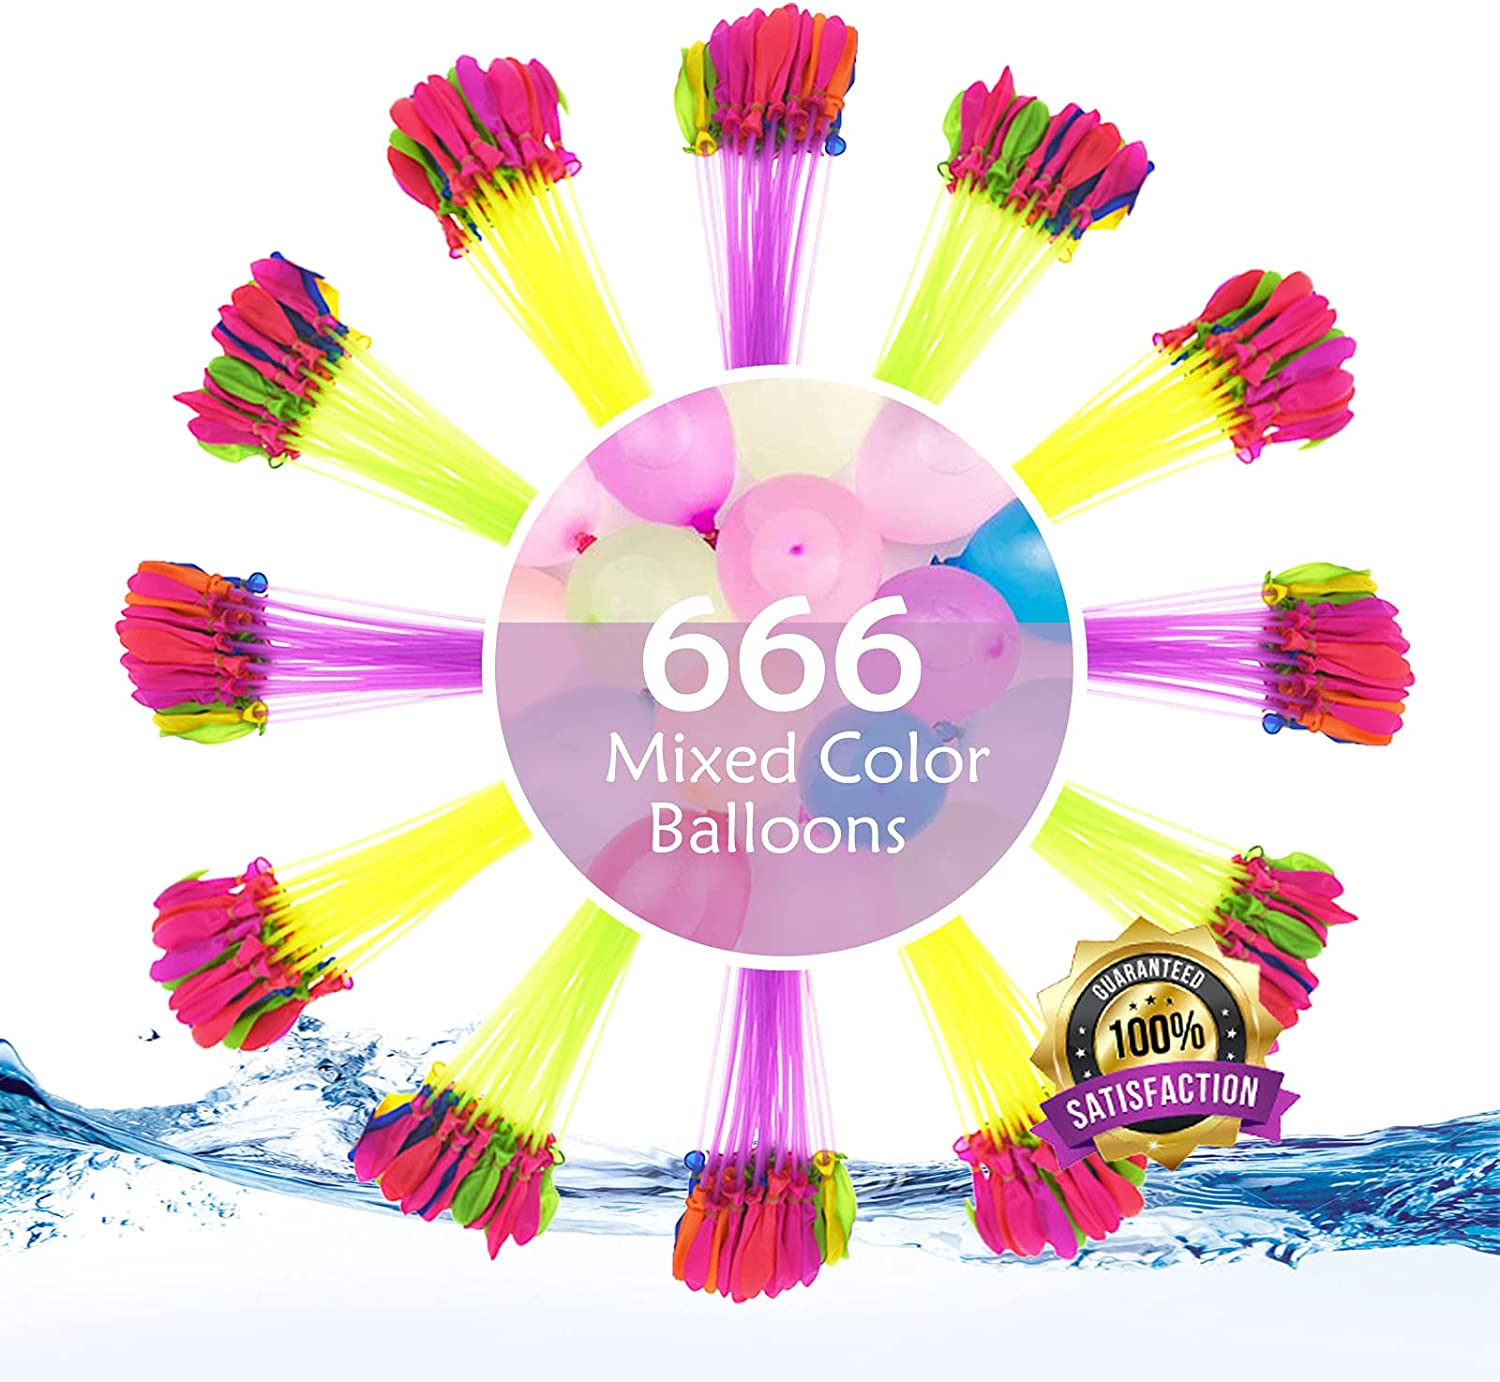 Water Balloons Classic 6 Pack At the price - 666 Multi-Colored Biodegradabl Rapid